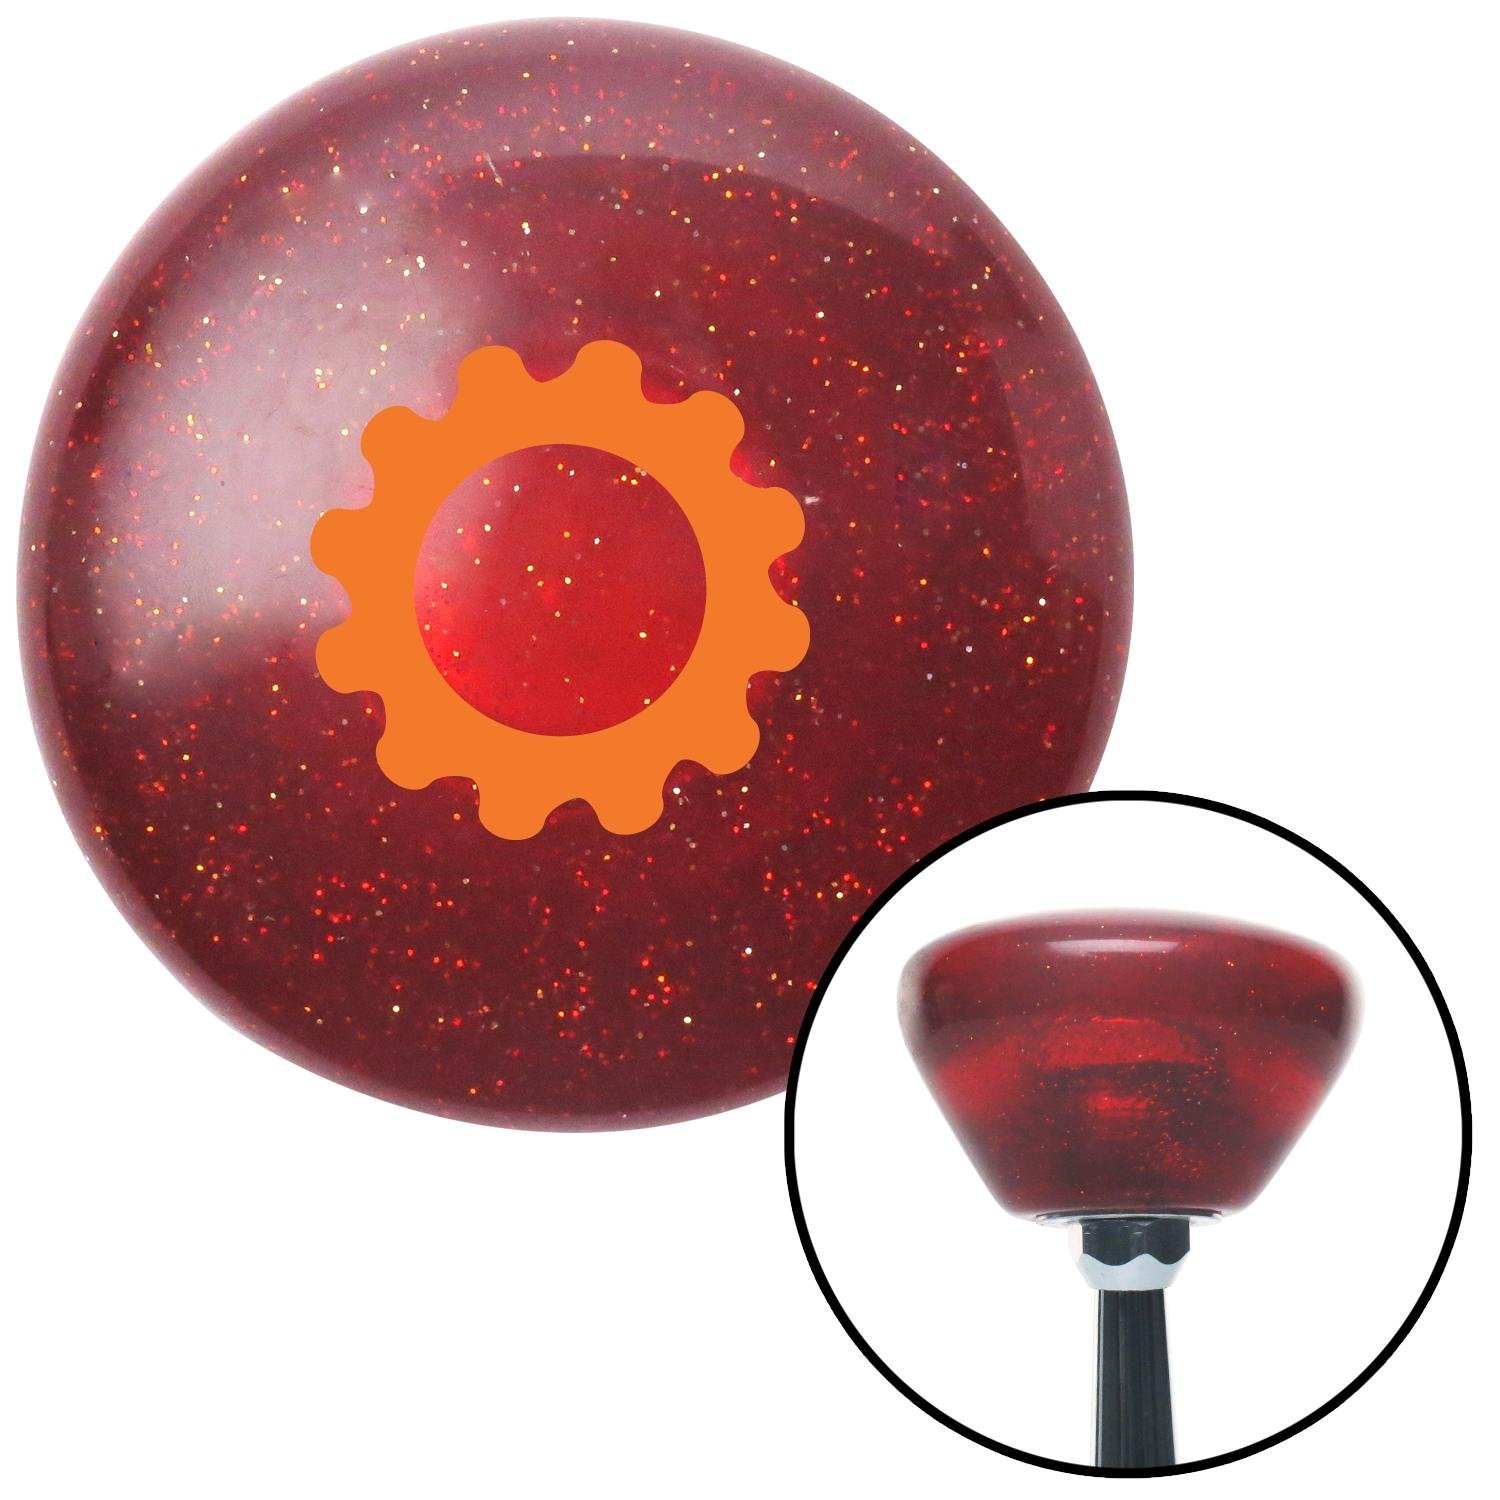 American Shifter 193285 Red Retro Metal Flake Shift Knob with M16 x 1.5 Insert Orange Solid Gear